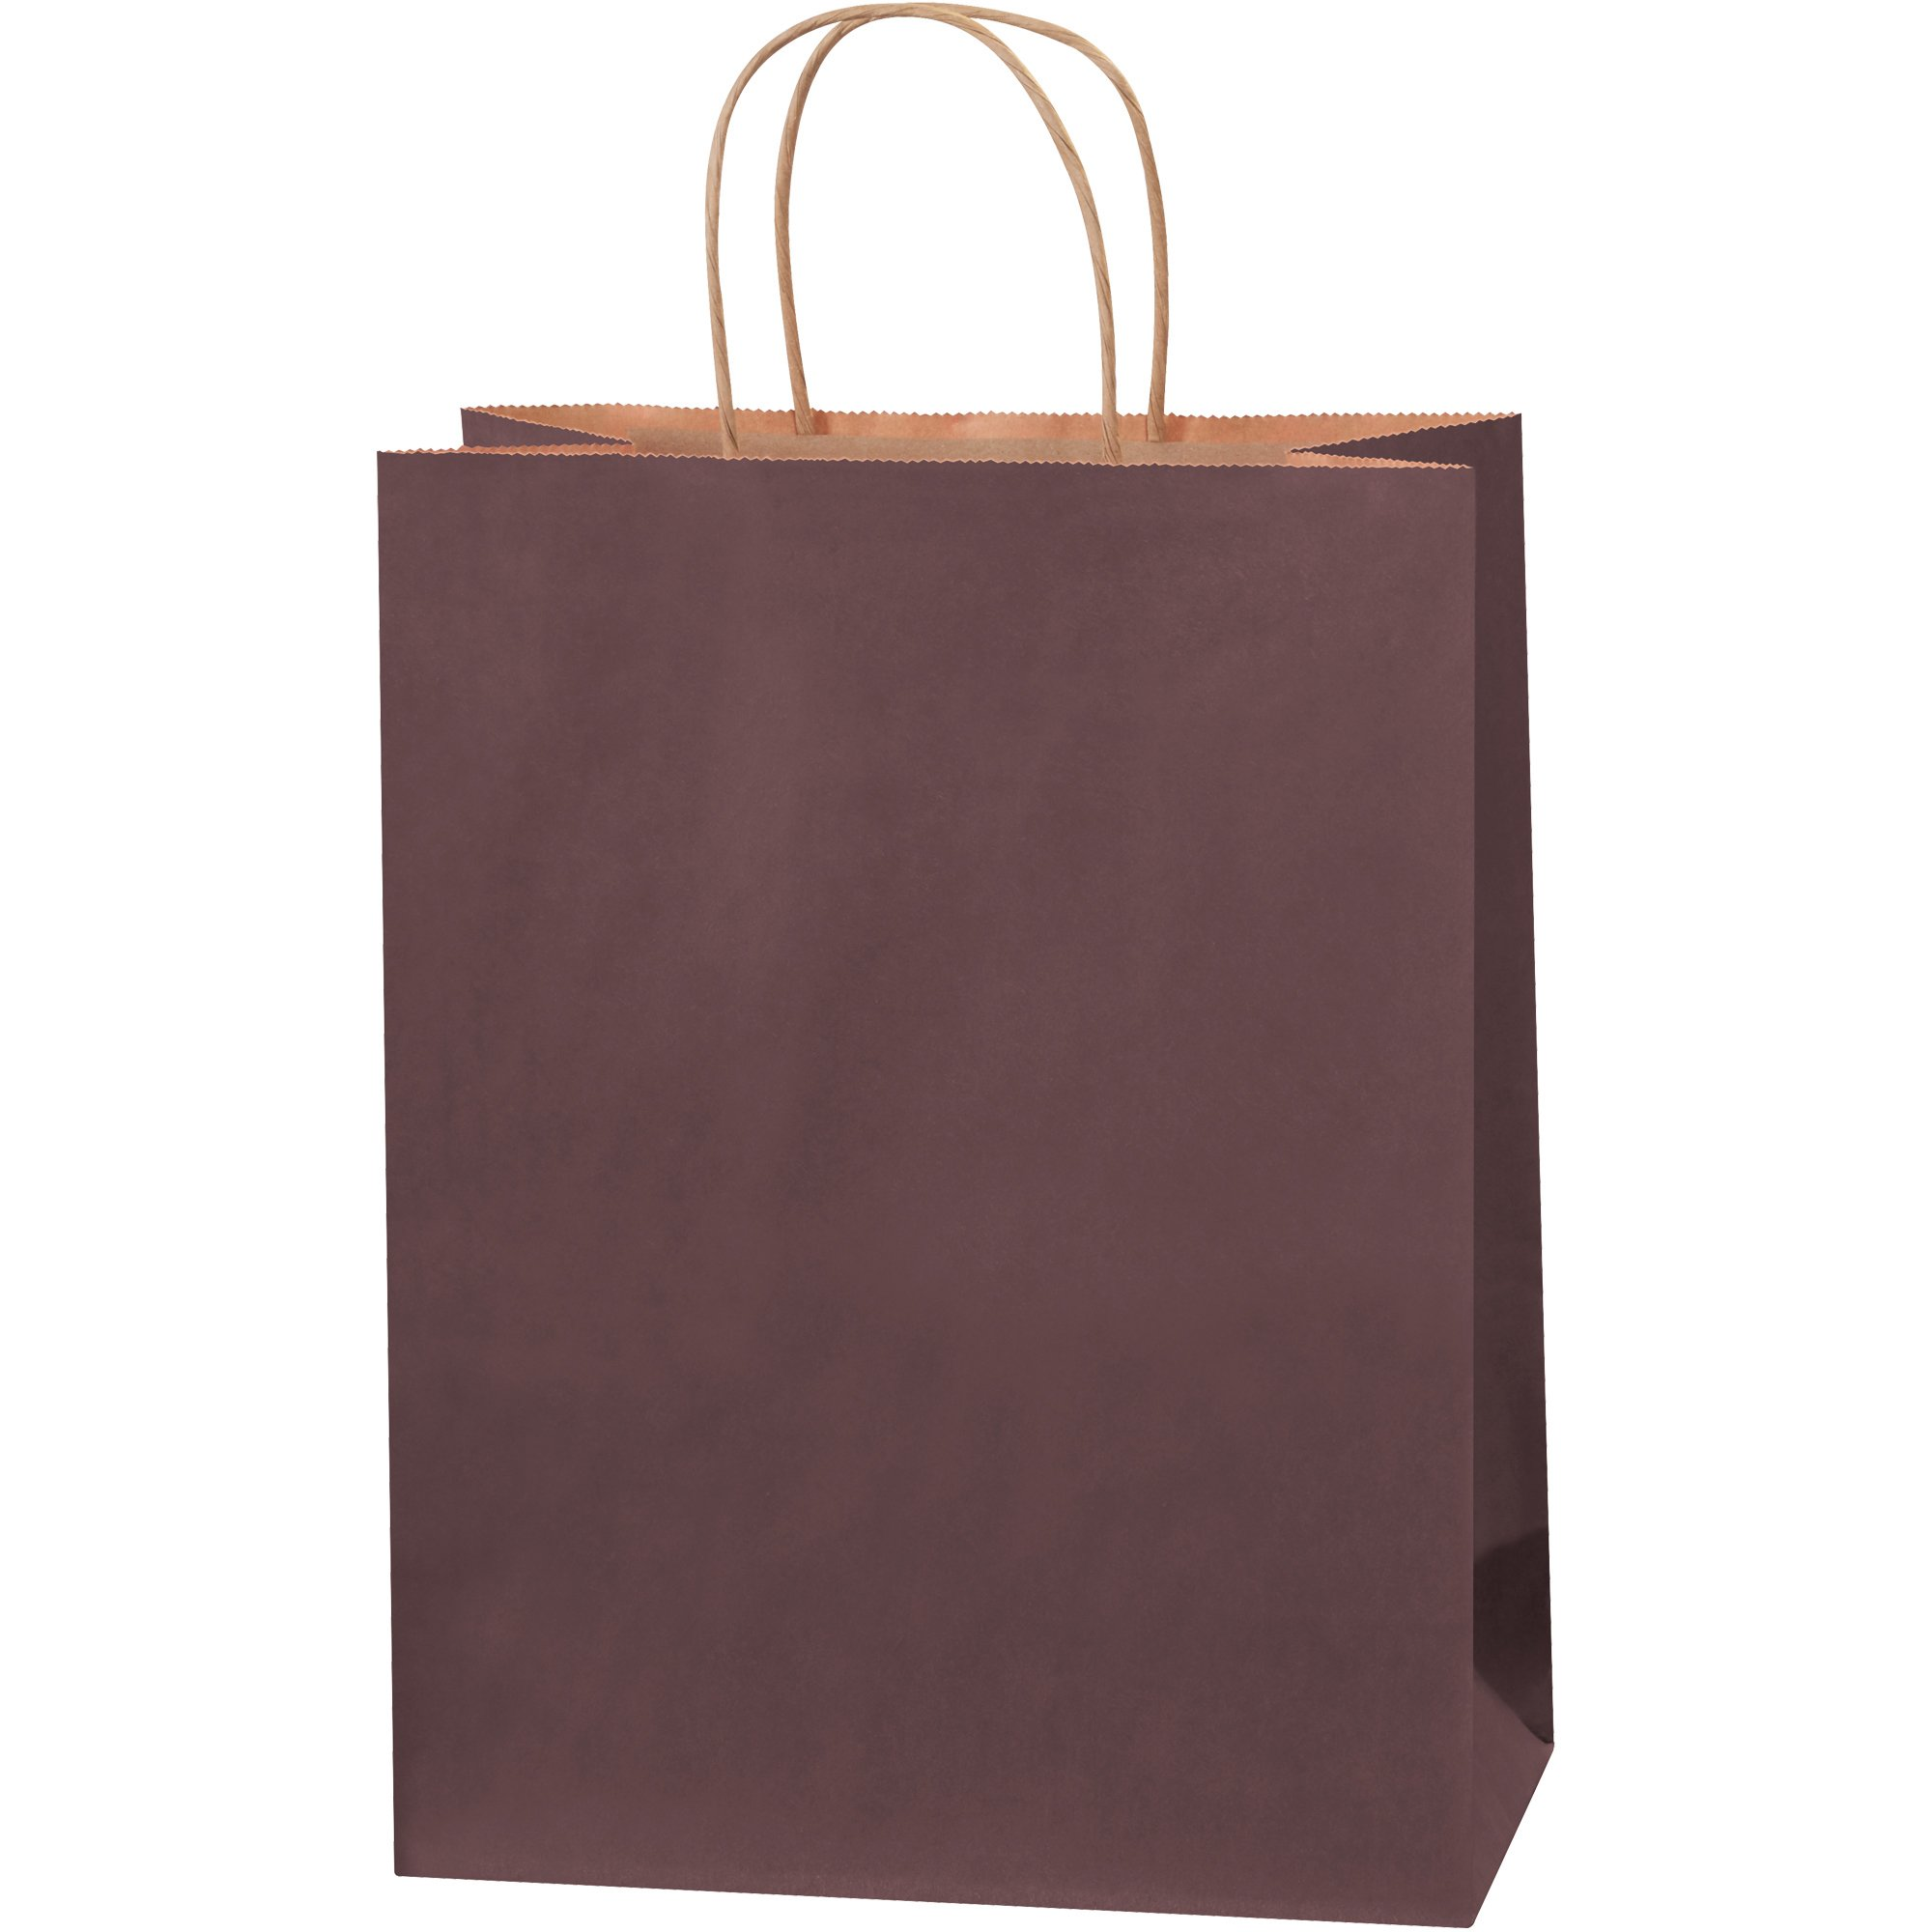 Tinted Shopping Bags, 10'' x 5'' x 13'', Brown, 250/Case